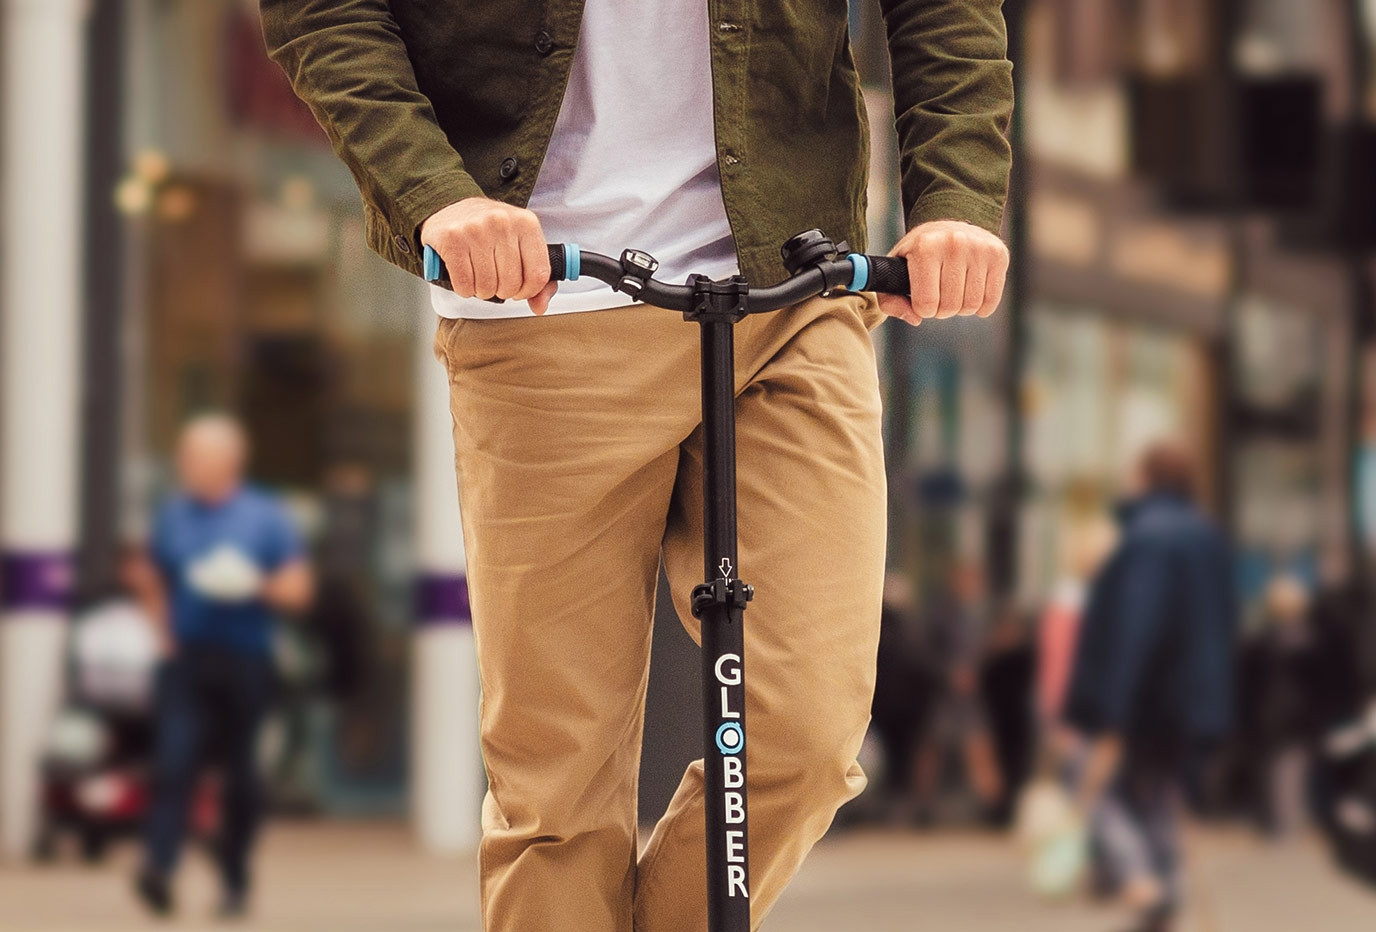 ONE-K-EMOTION-robust-electric-scooter-with-durable-TPR-handlebar-grips